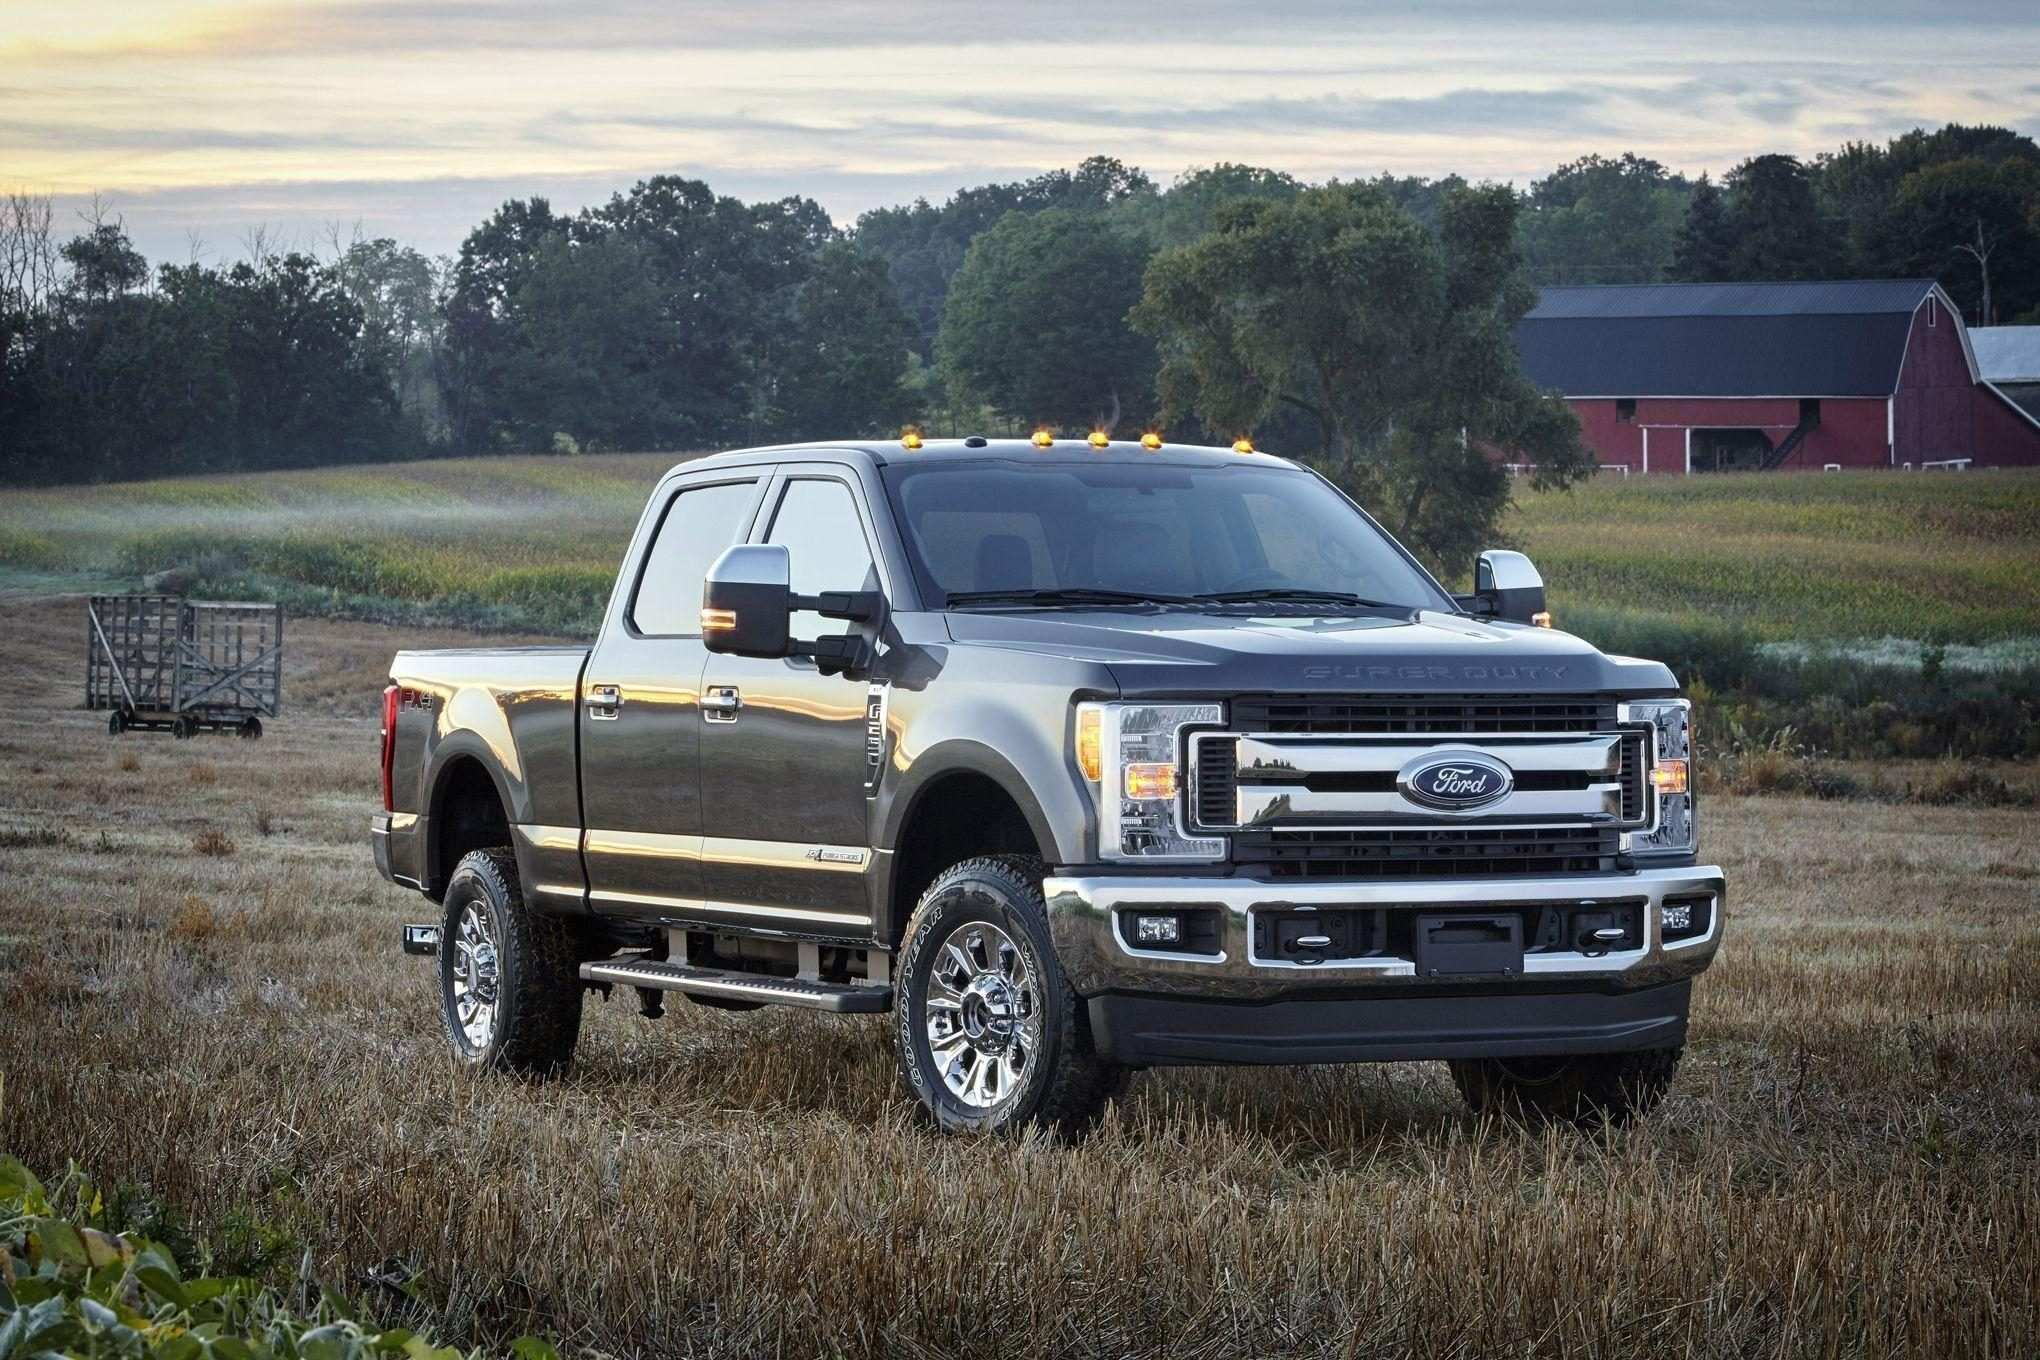 89 A 2020 Ford F250 Diesel Rumored Announced Speed Test